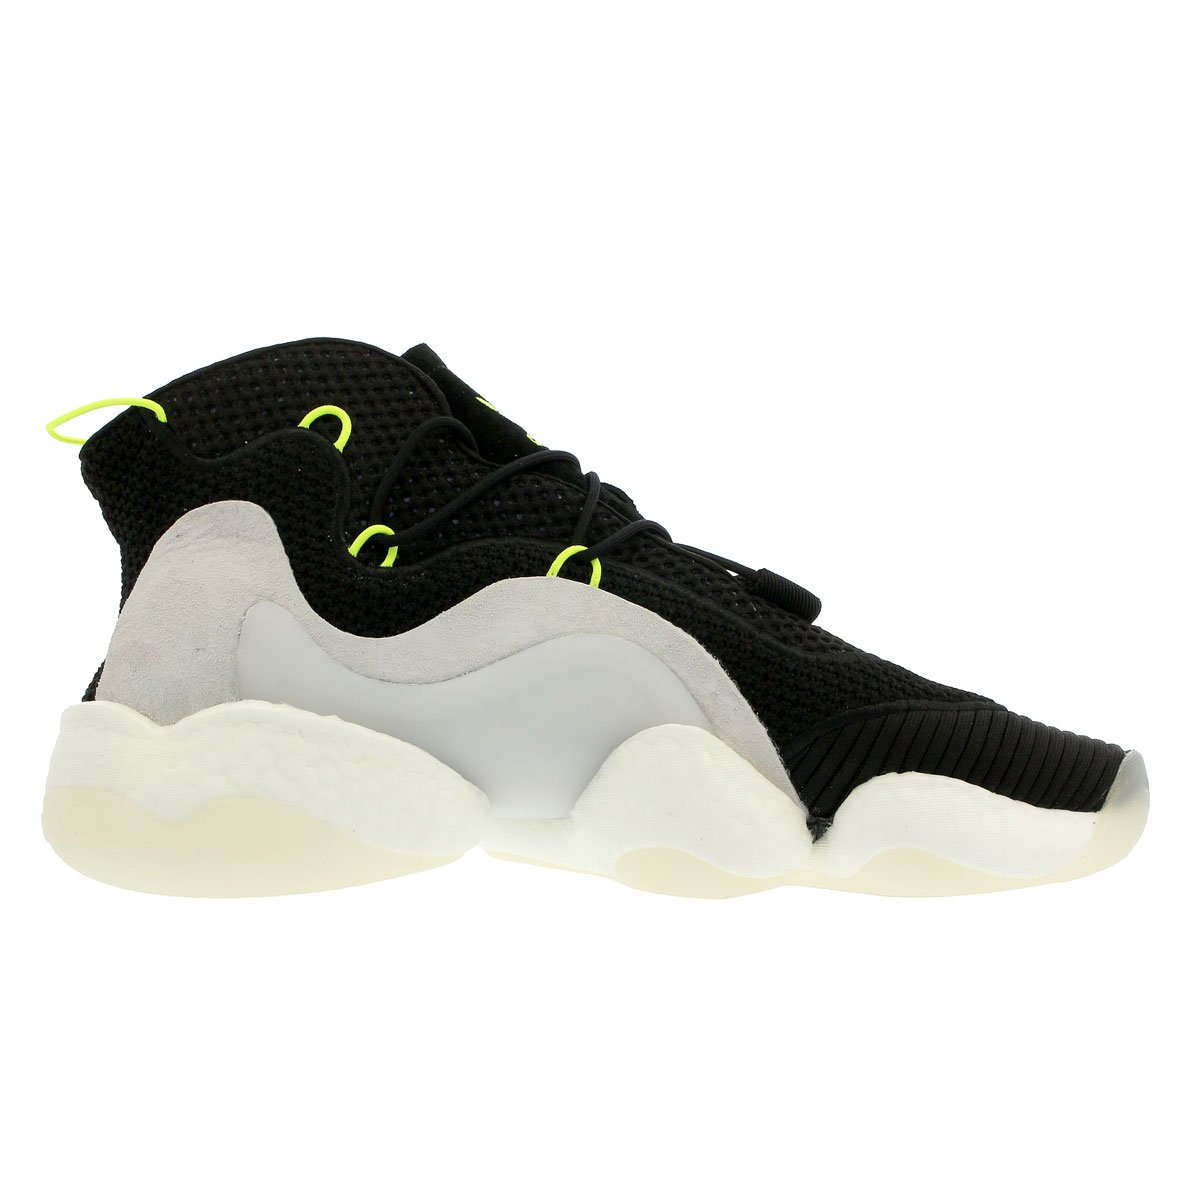 sale retailer 1d563 13cec LOWTEX PLUS adidas CRAZY BYW LVL I Adidas crazy BYW LVL I CORE BLACKRUNNING  WHITESOLAR YELLOW b37549  Rakuten Global Market